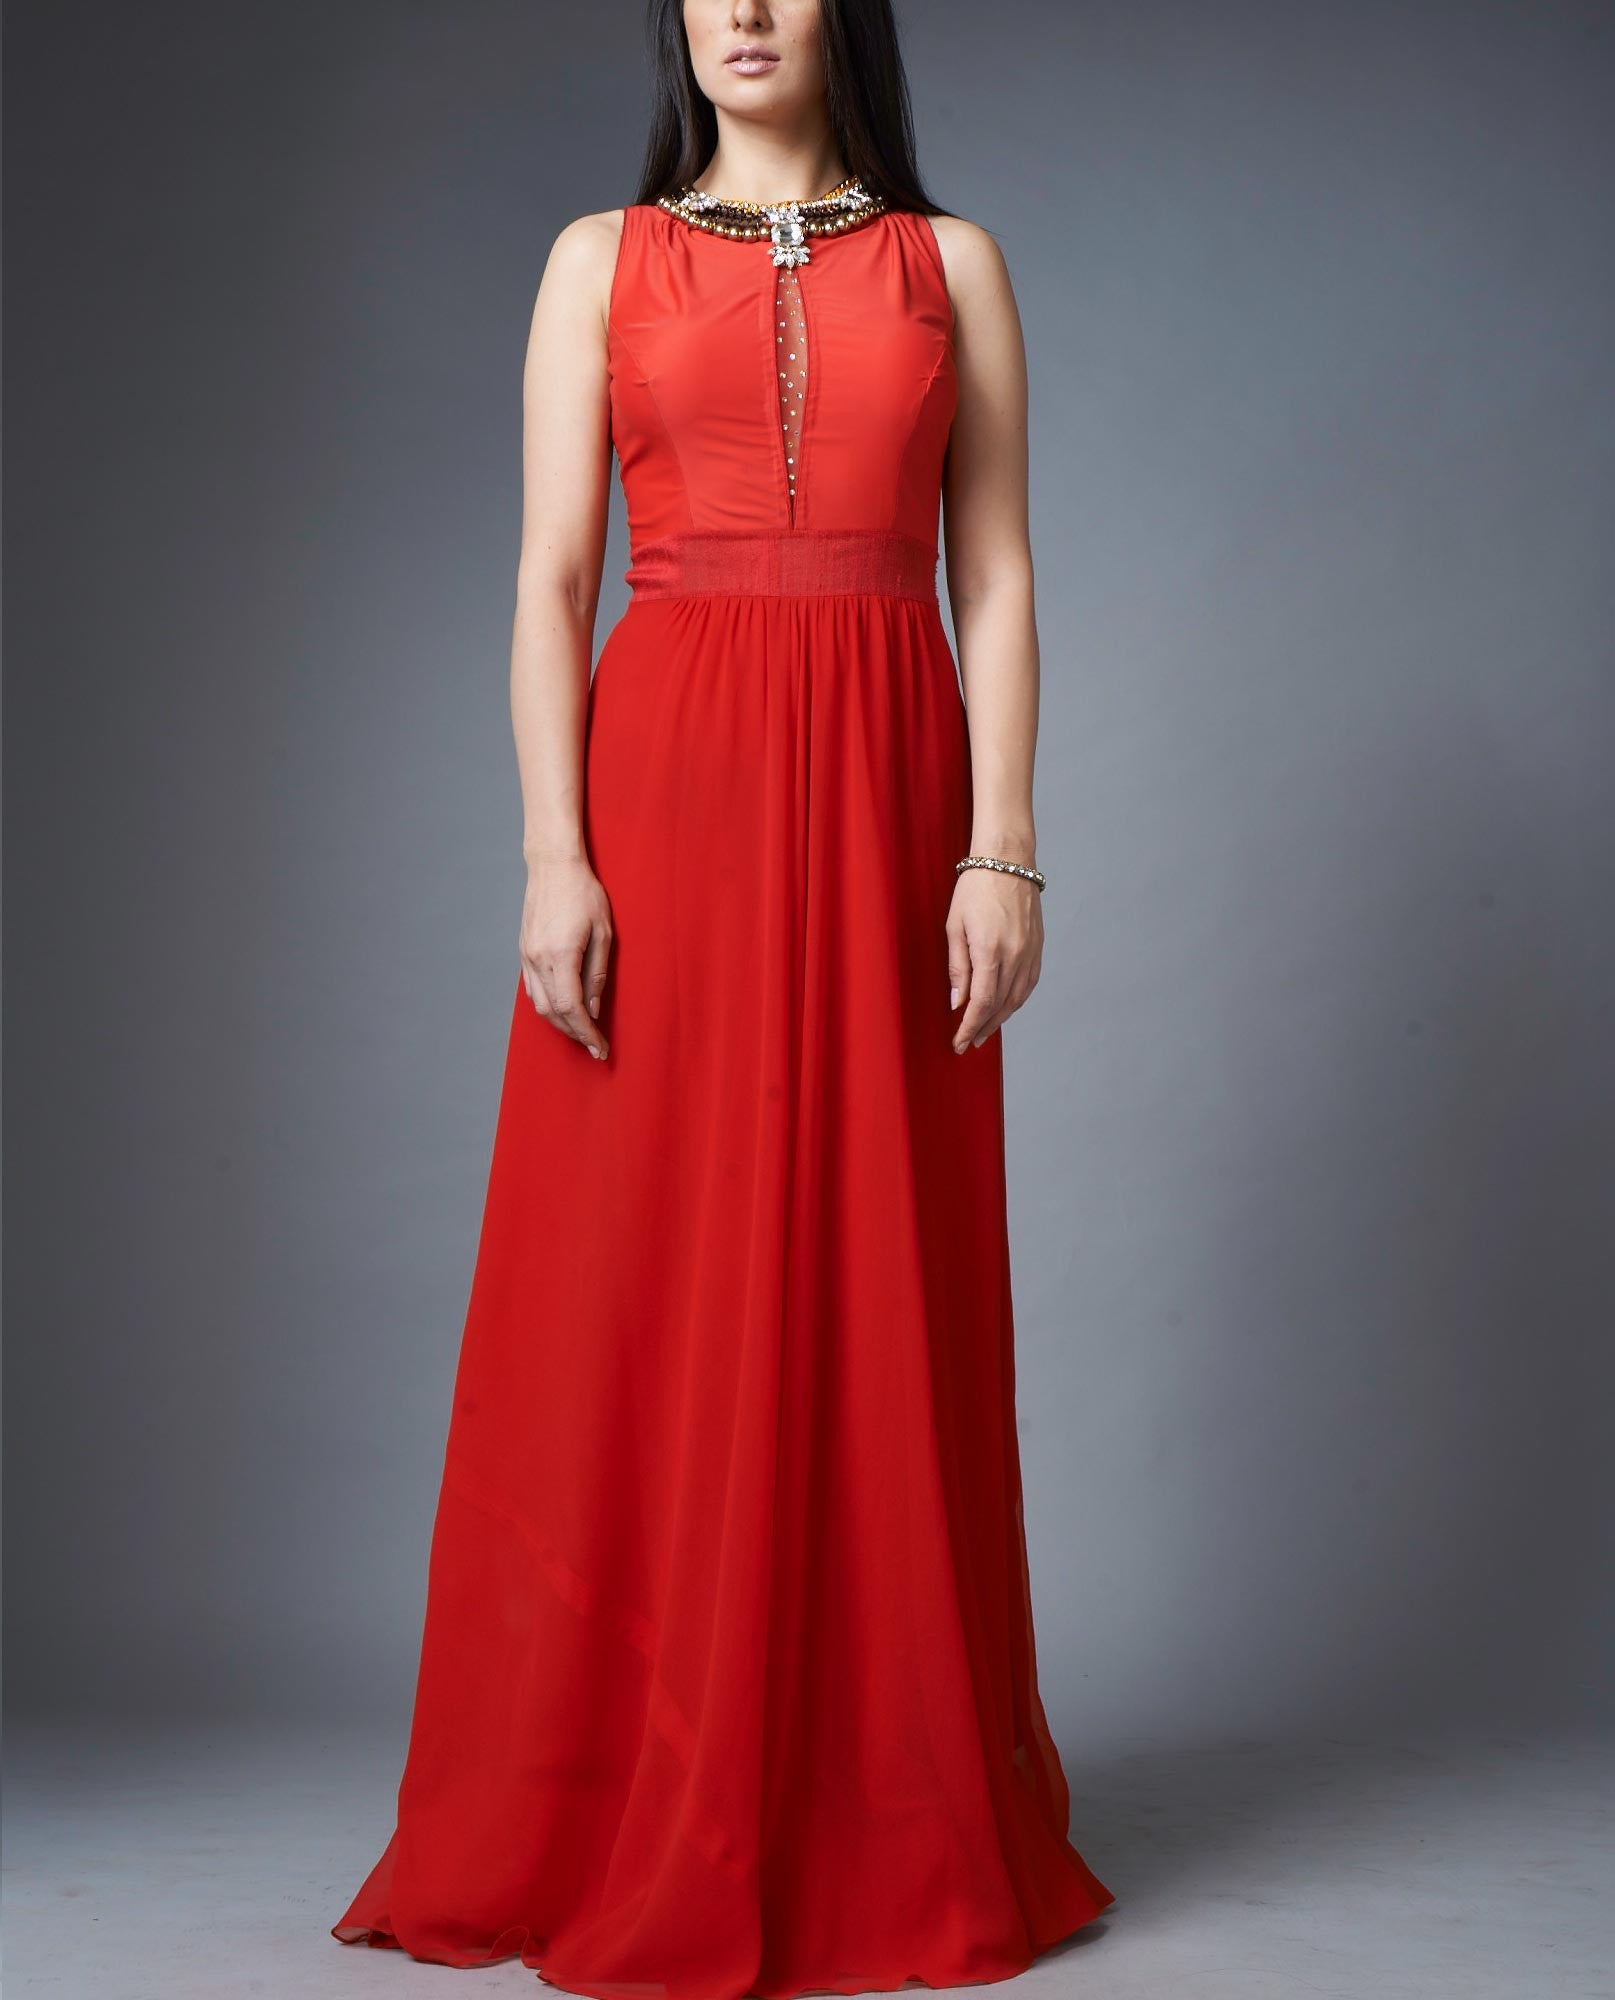 Evening Gowns - Fiery Red Gown